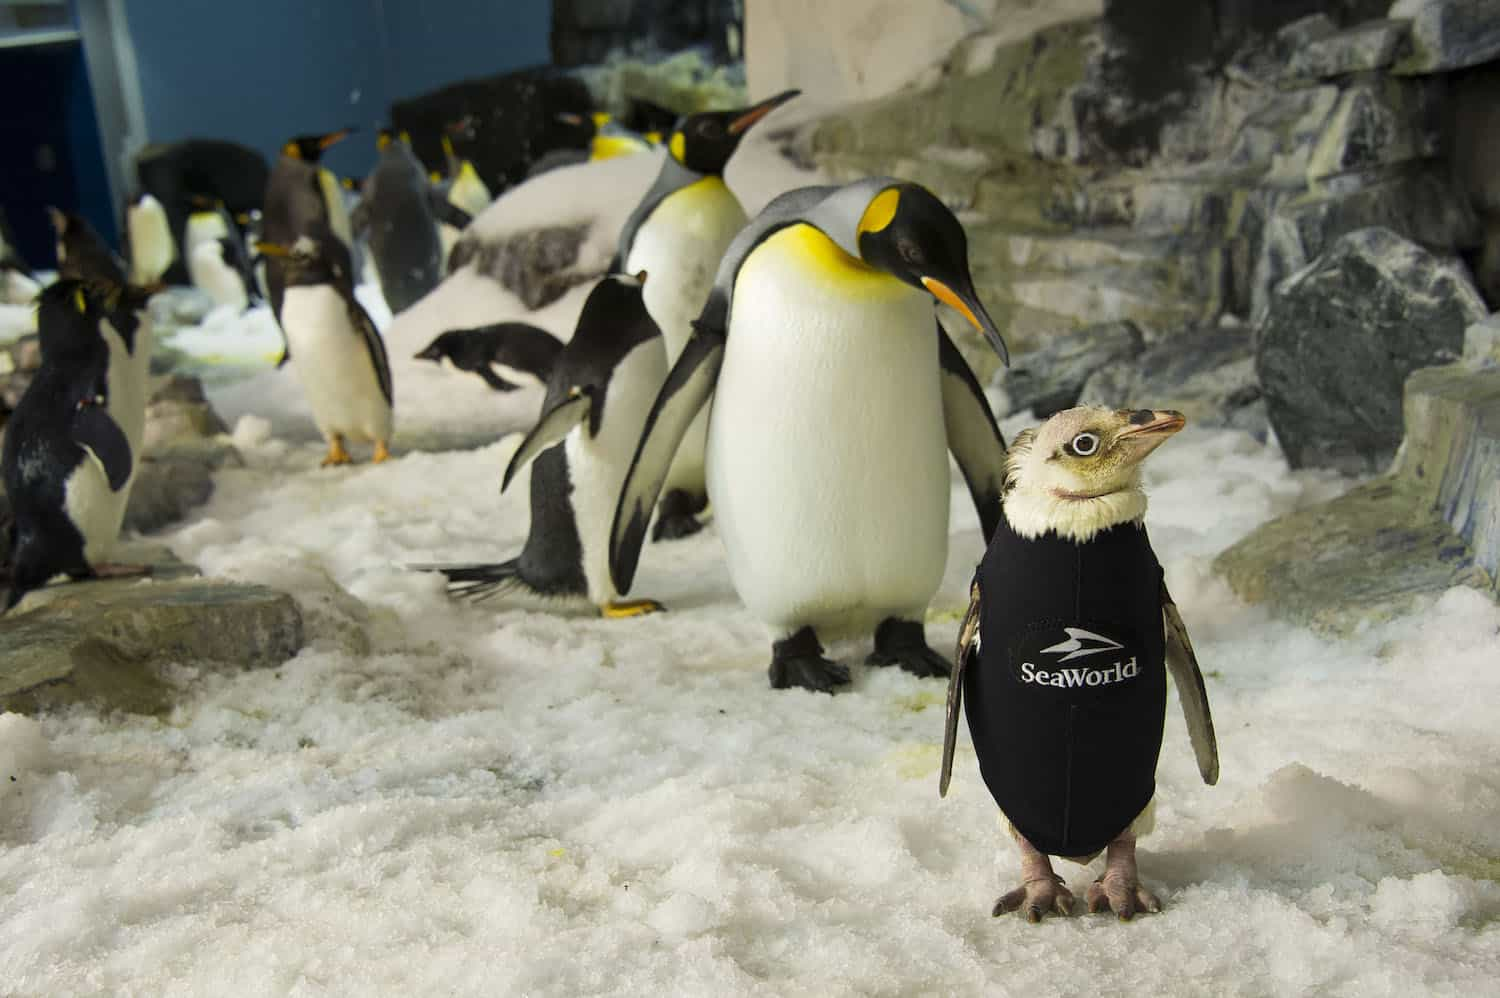 SeaWorld's wardrobe department made a coat for a featherless penguin